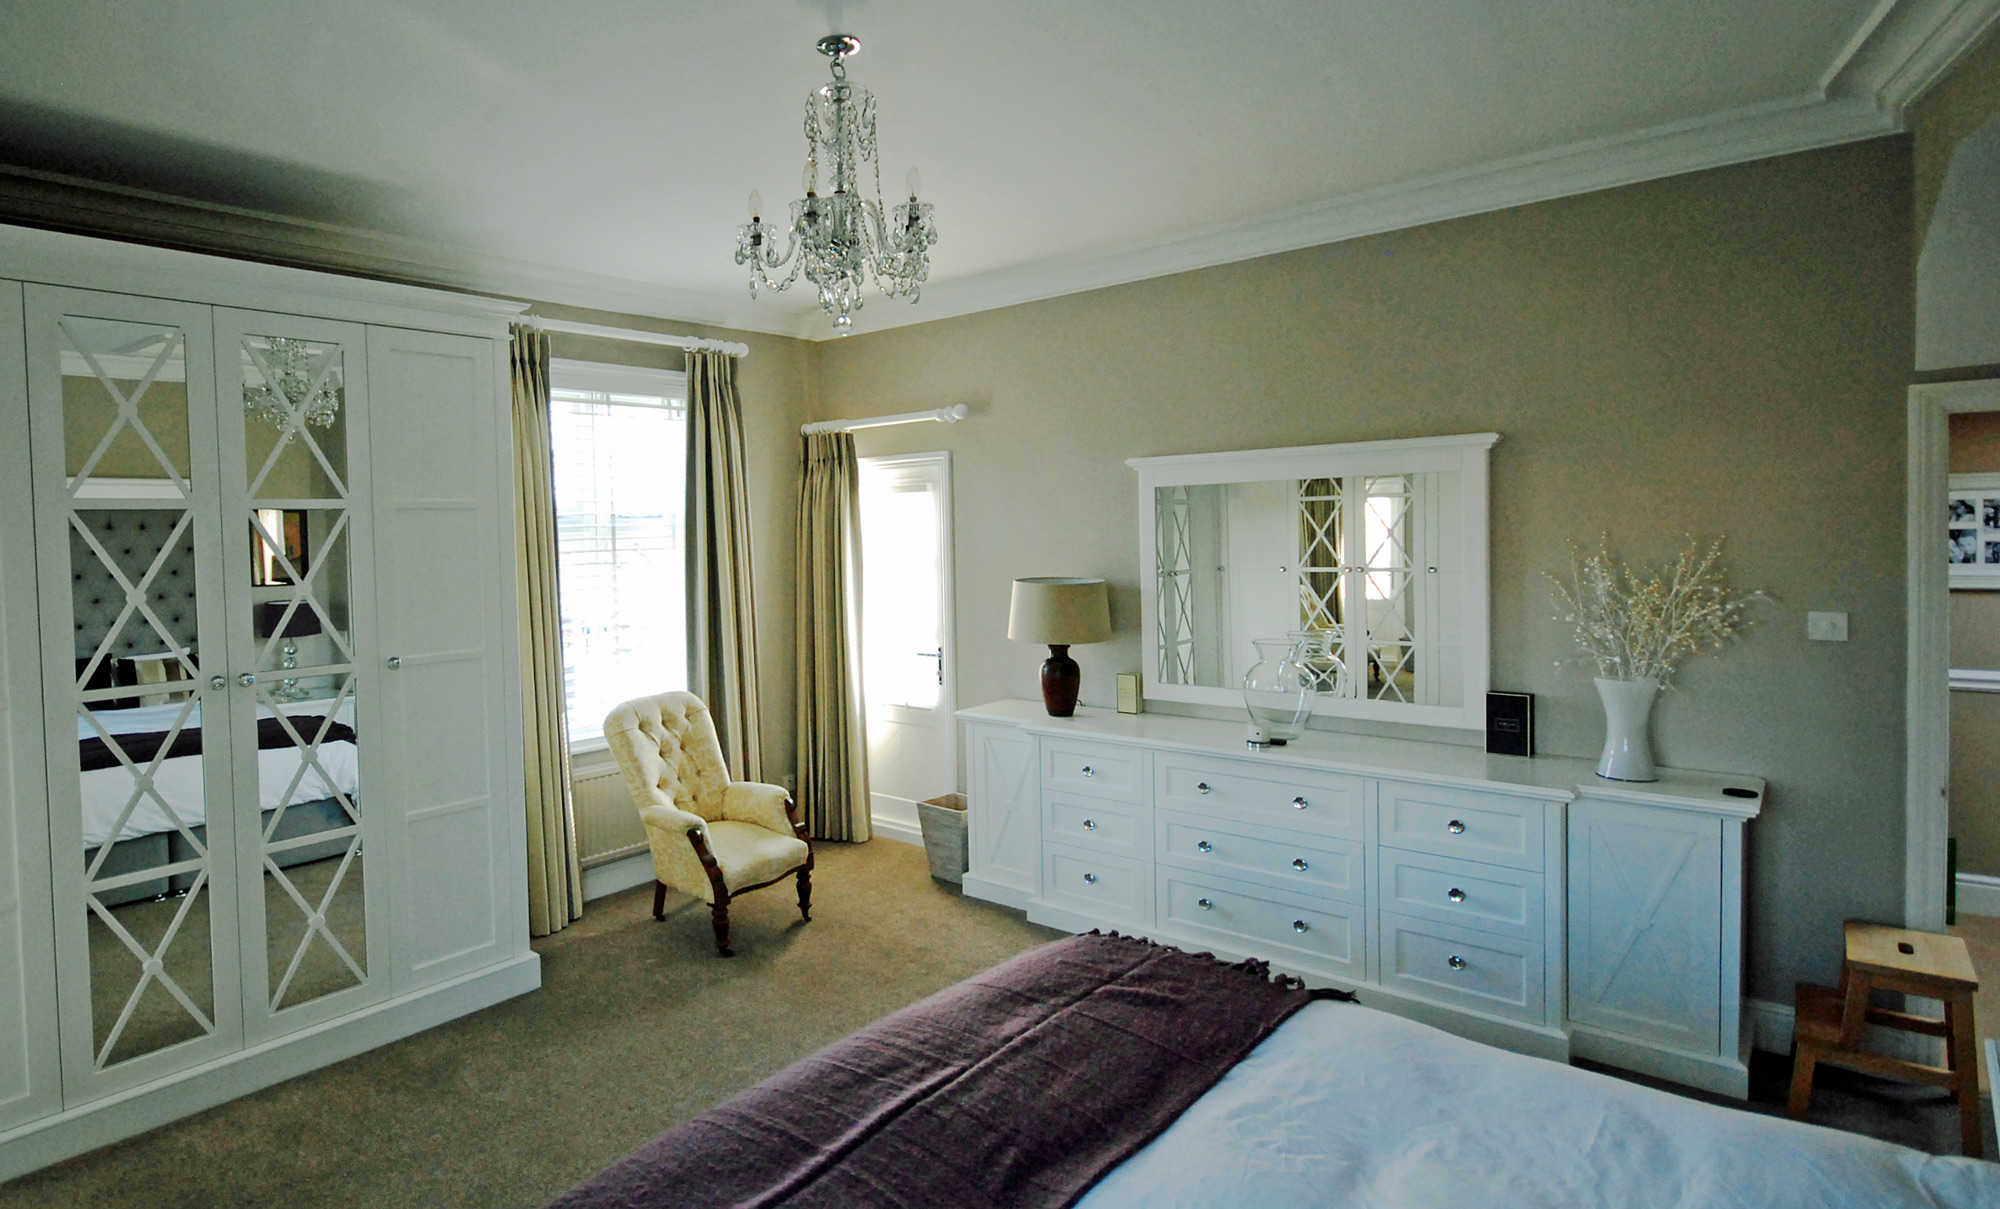 Bedroom with White Furniture